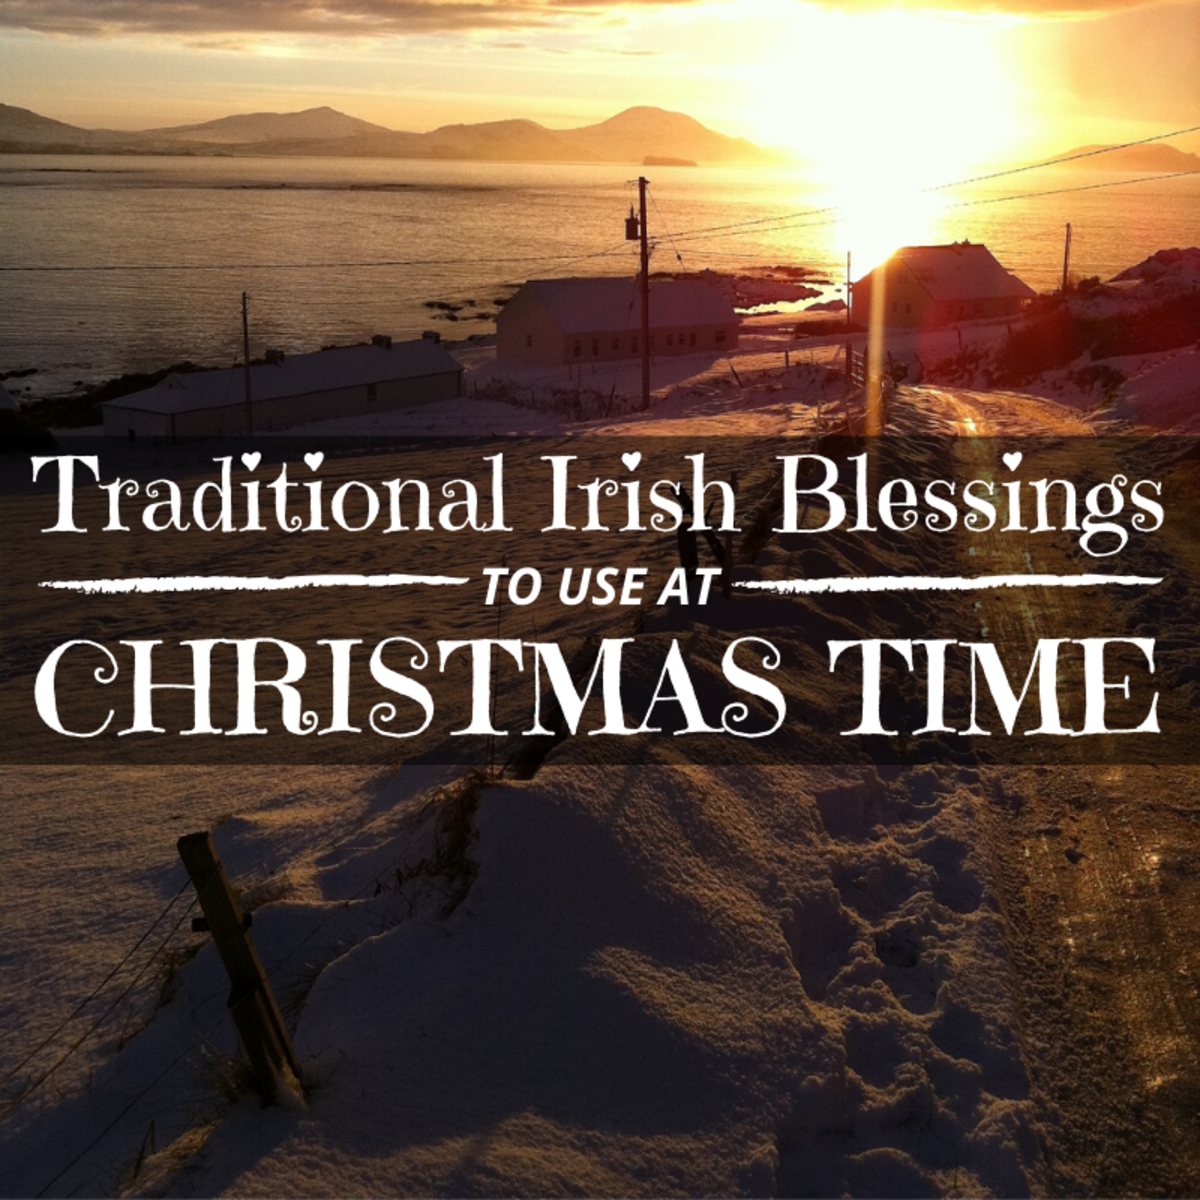 In Ireland, it is traditional to recite blessings to commemorate special events or important occasions. These blessings are perfect for Christmas.